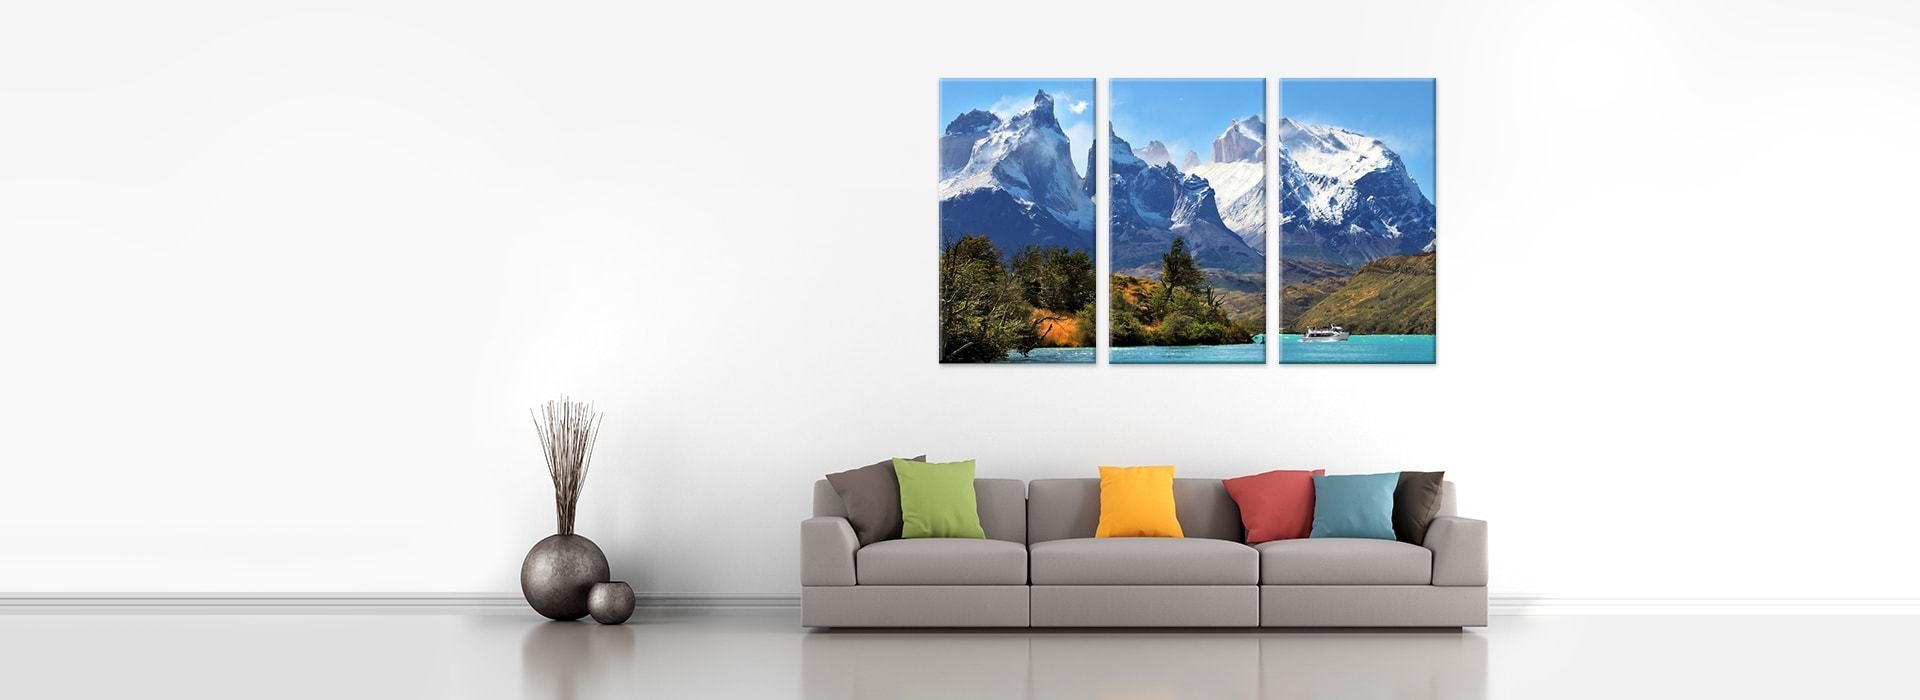 Saving Tips On Personalized Canvas Prints | Music Interprete For 2018 Canvas Wall Art In Melbourne (View 13 of 15)